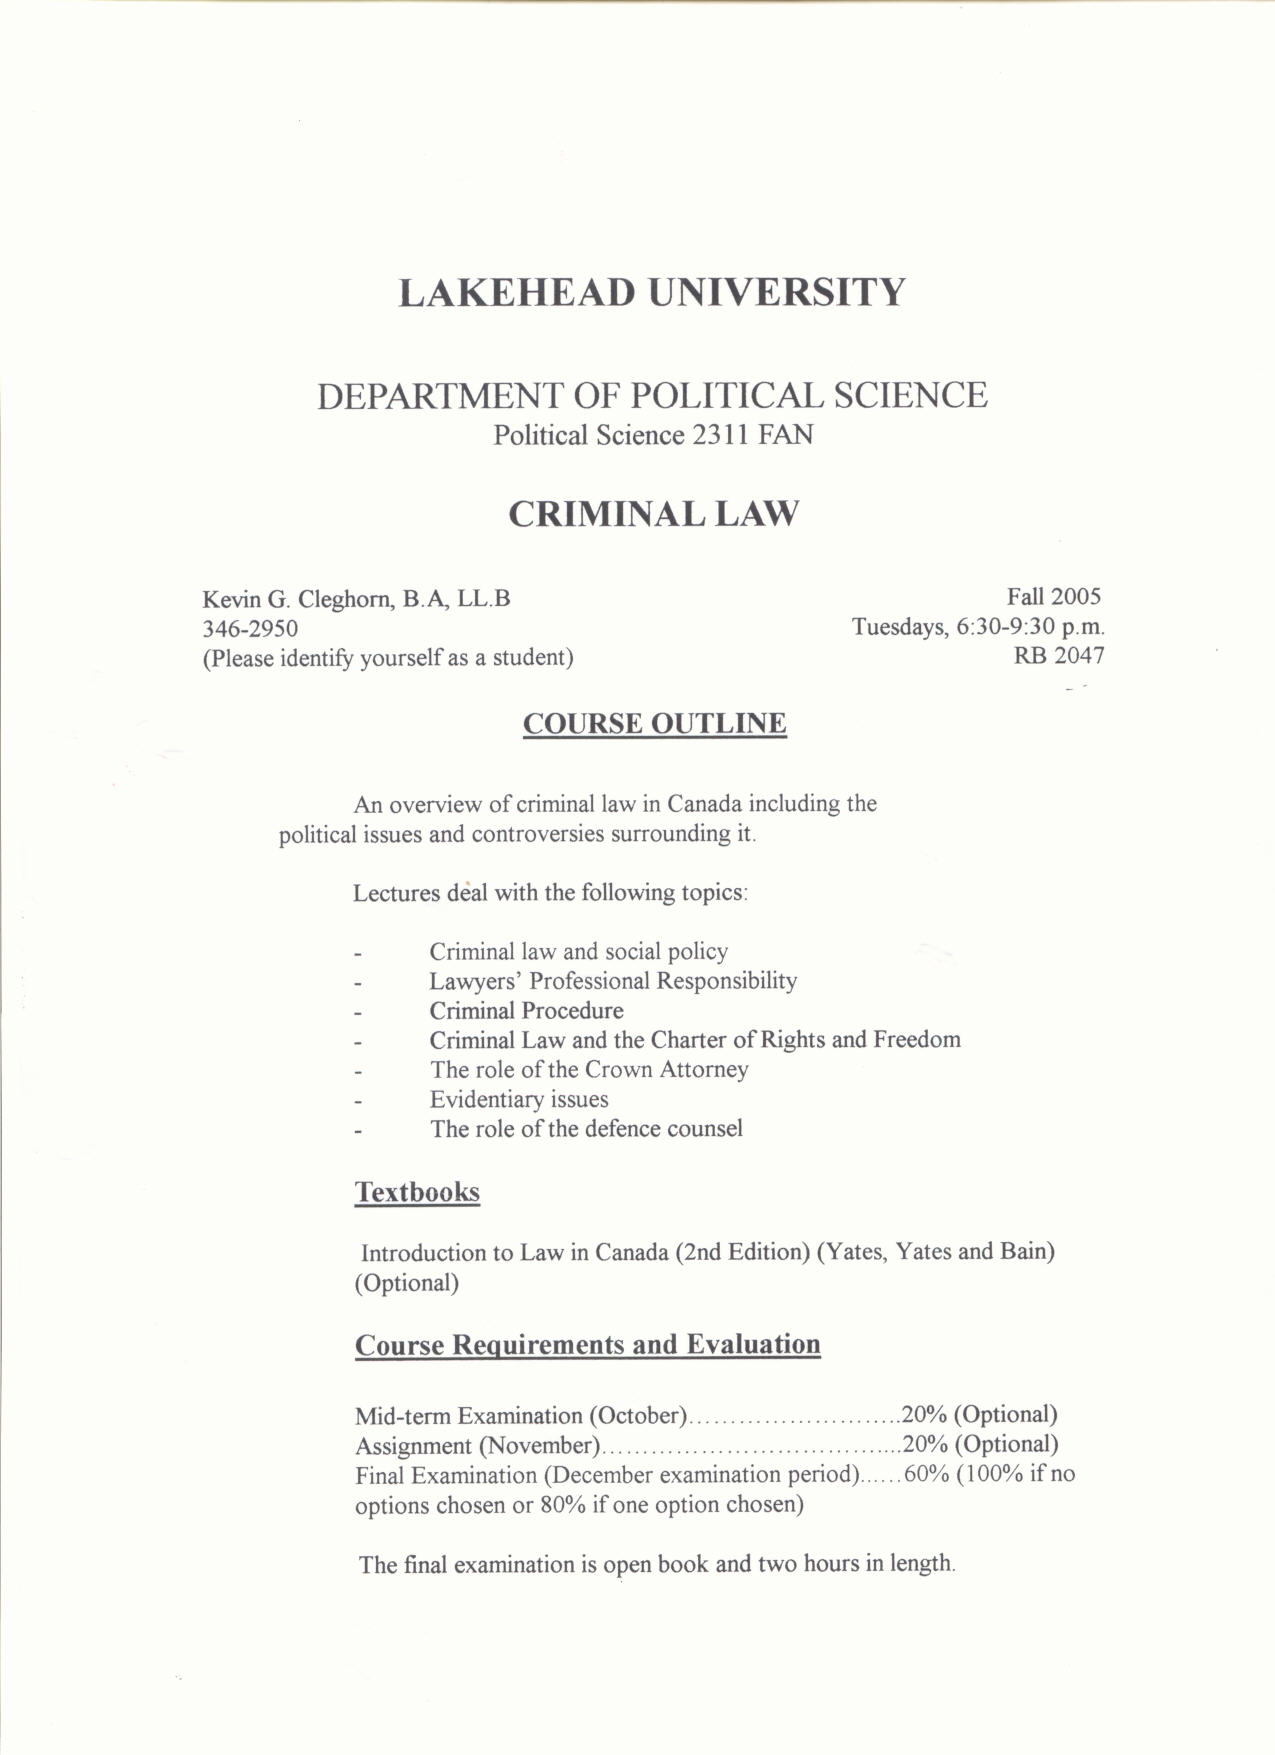 political science essay kants principles of politics including his lakehead universitypolitical science fa criminal law